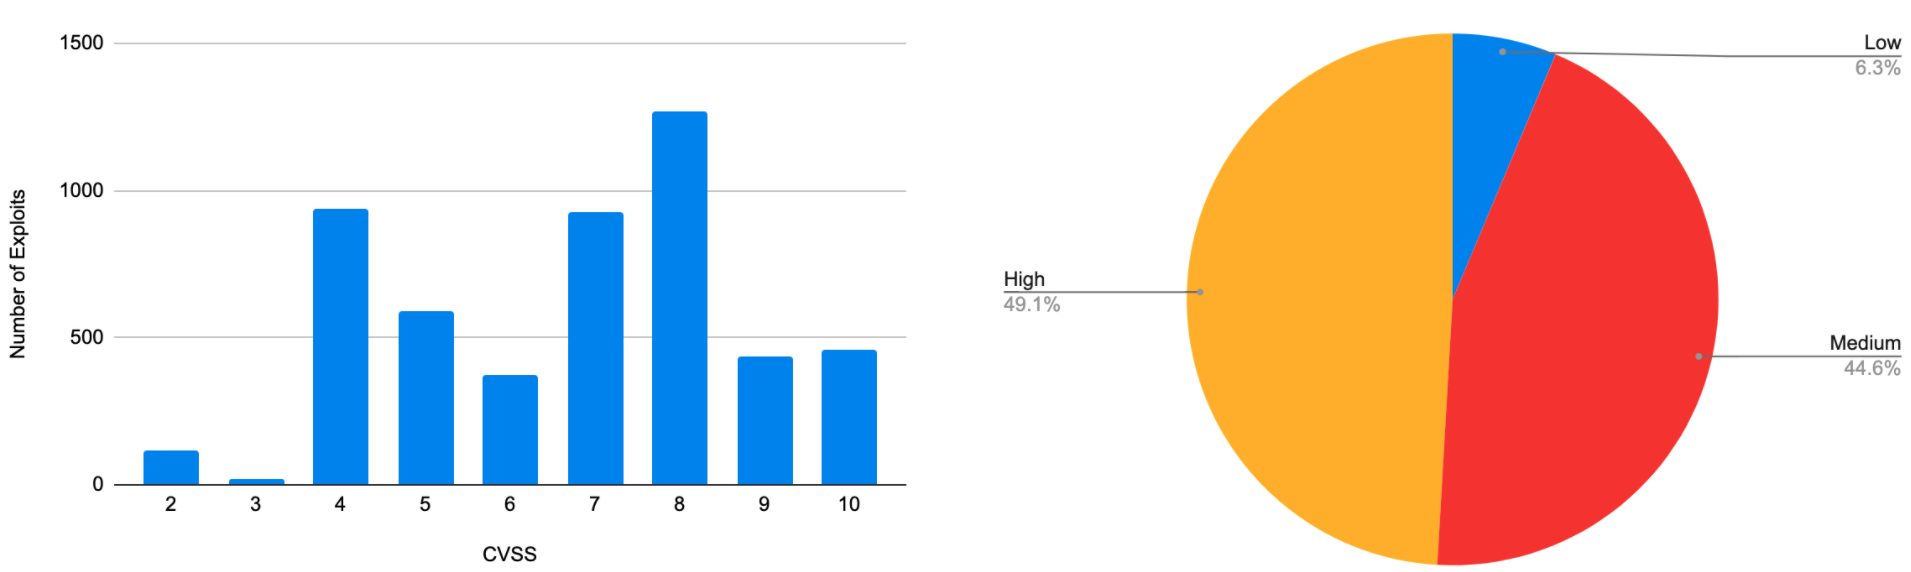 The bar graph on the left shows number of exploits (y-axis) and CVSS score (x-axis). The pie chart on the right illustrates the state of exploit development in terms of severity, categorized as low (CVSS < 4), medium (CVSS < 7 and >= 4) and high (CVSS >=7).